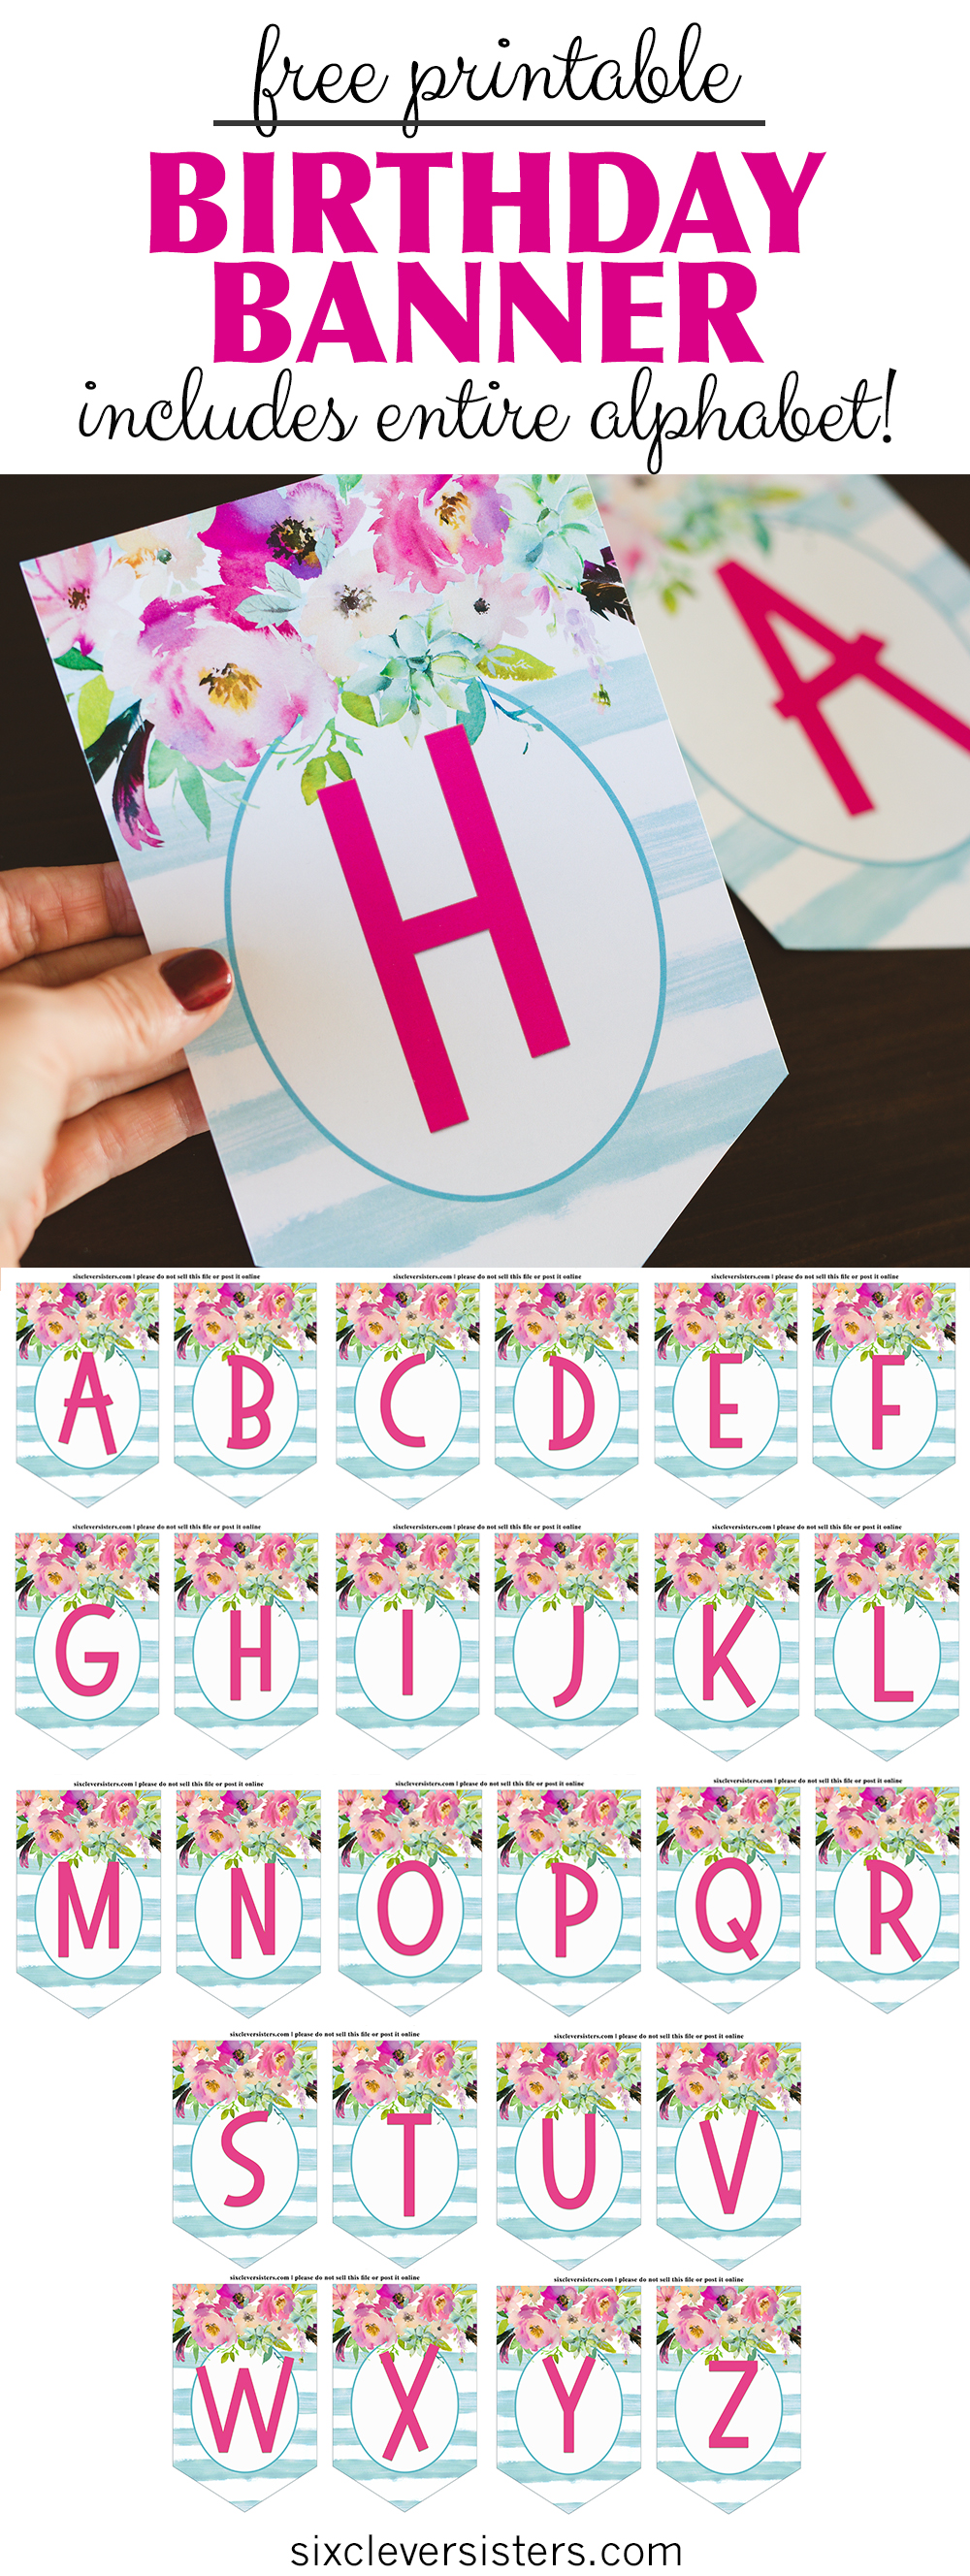 image about Free Birthday Banner Printable known as Totally free Printable Birthday Banner - 6 Good Sisters